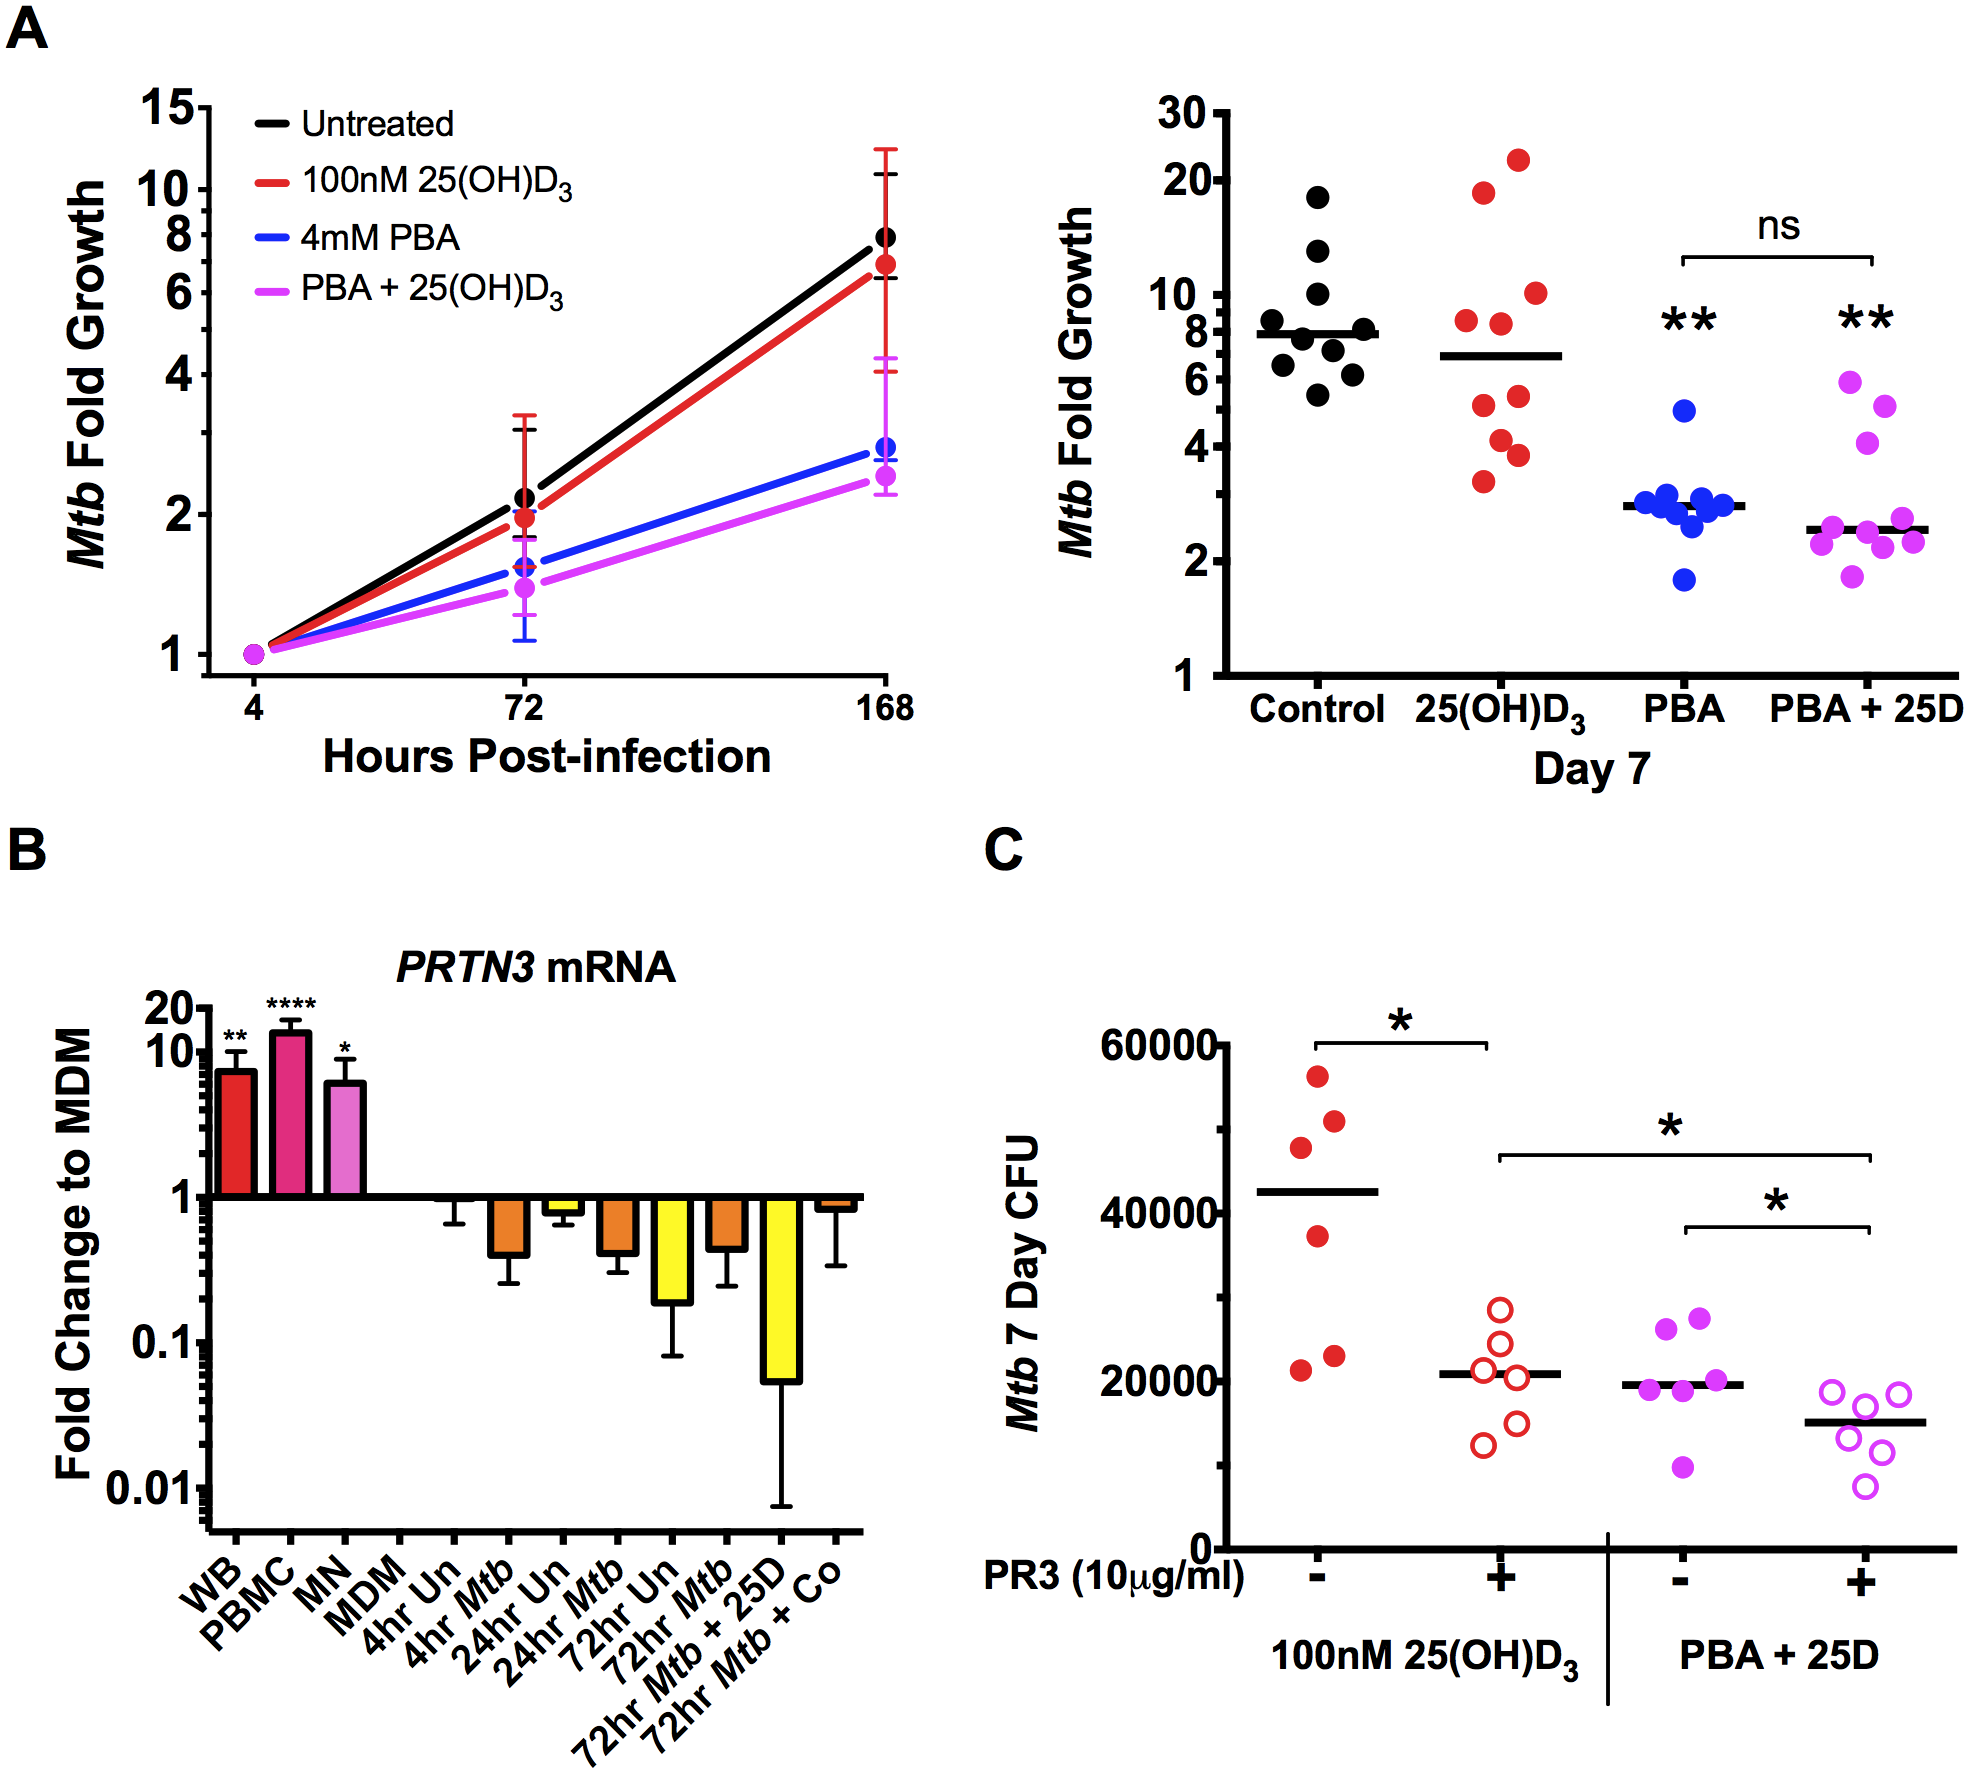 PBA restricts intracellular <i>Mtb</i> growth independently of 25(OH)D<sub>3</sub>.